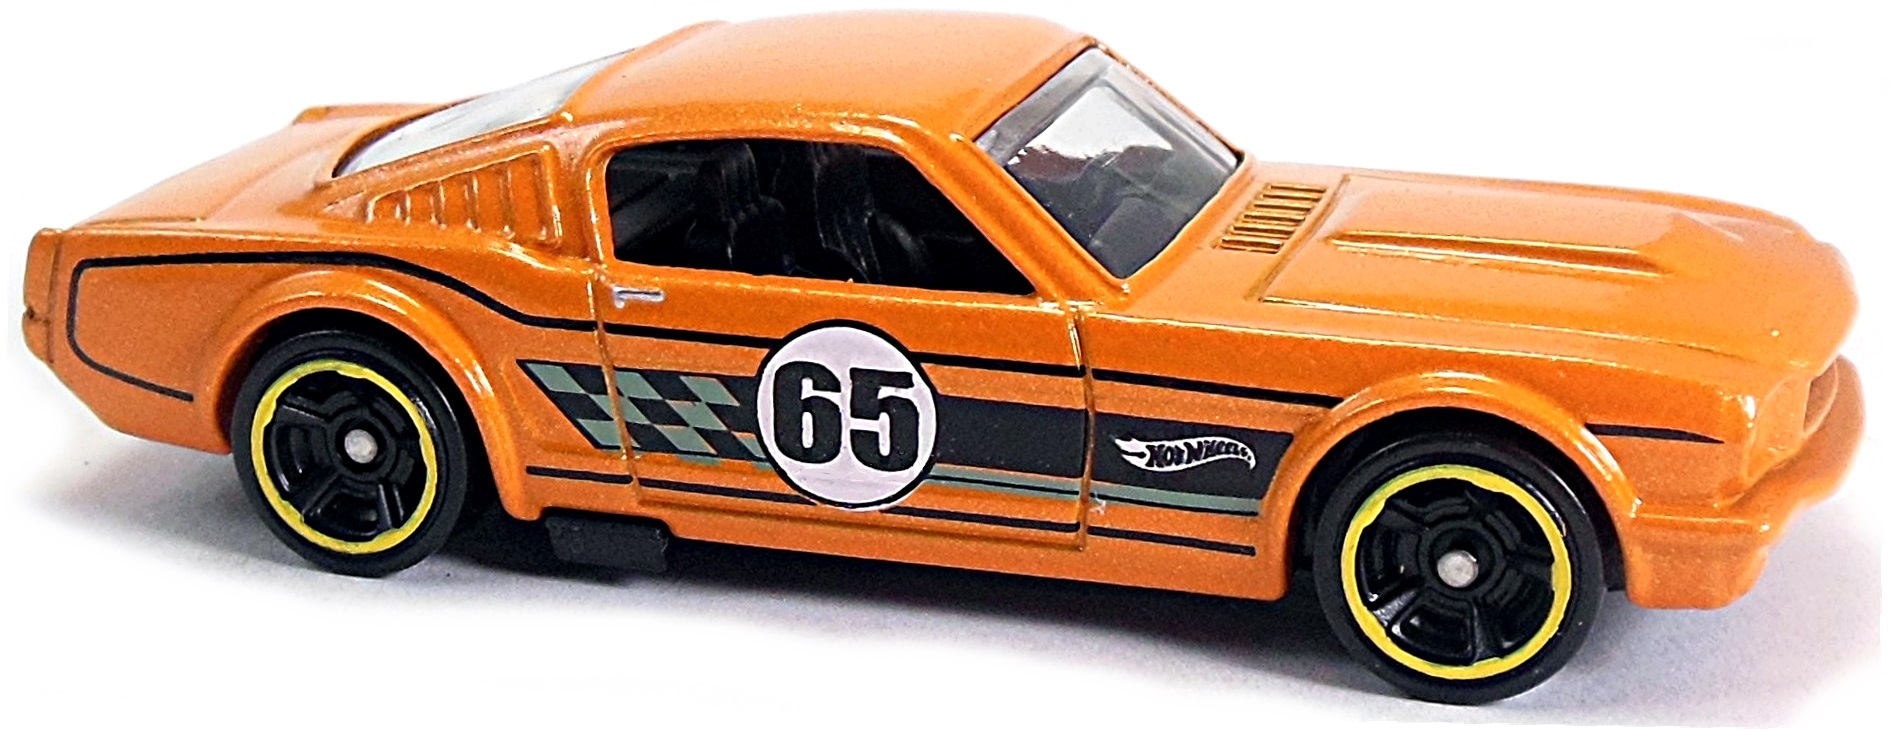 Ford mustang fastback aa